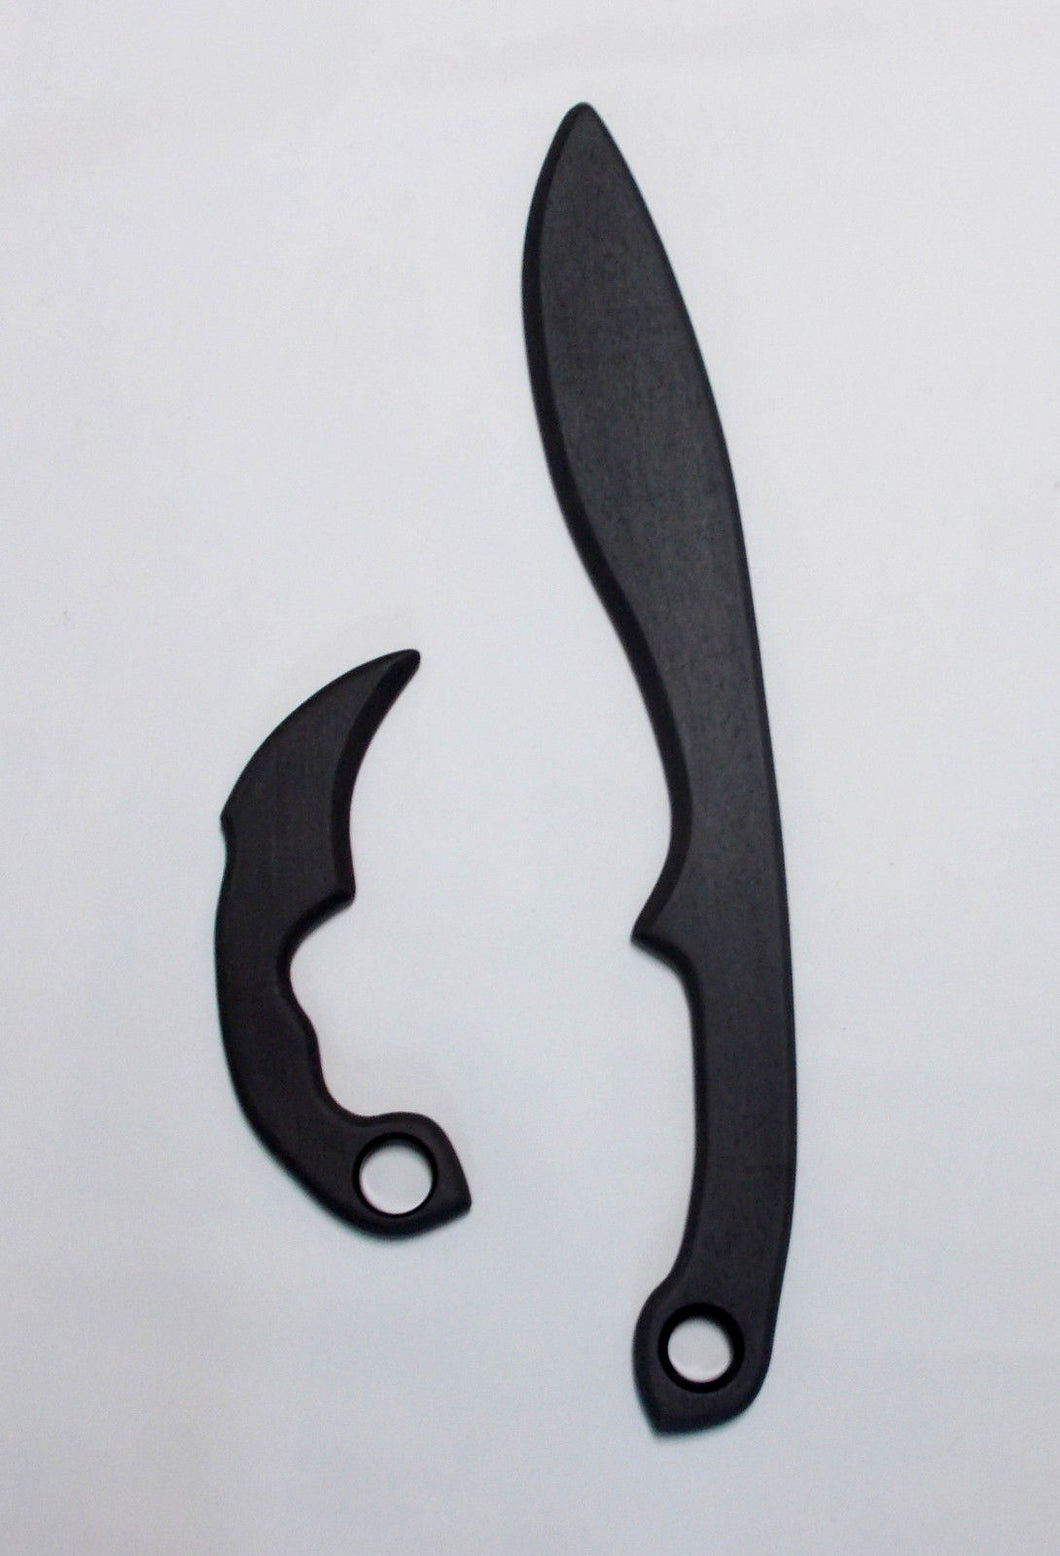 Espada y Daga Training Kukri Sword & Tactical Practice Karambit Fighting Knife